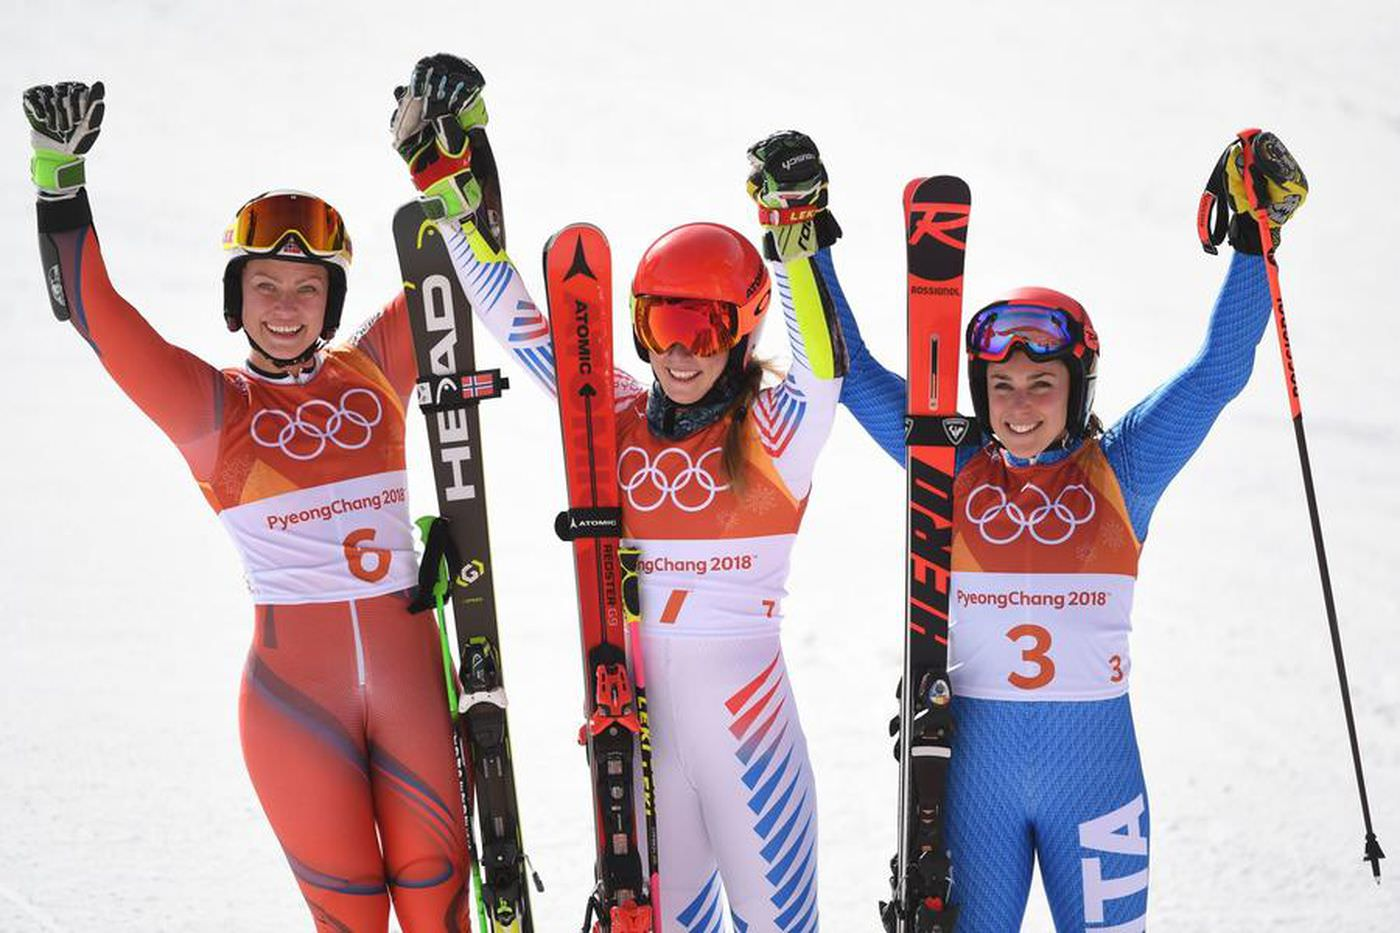 Giant slalom medalists